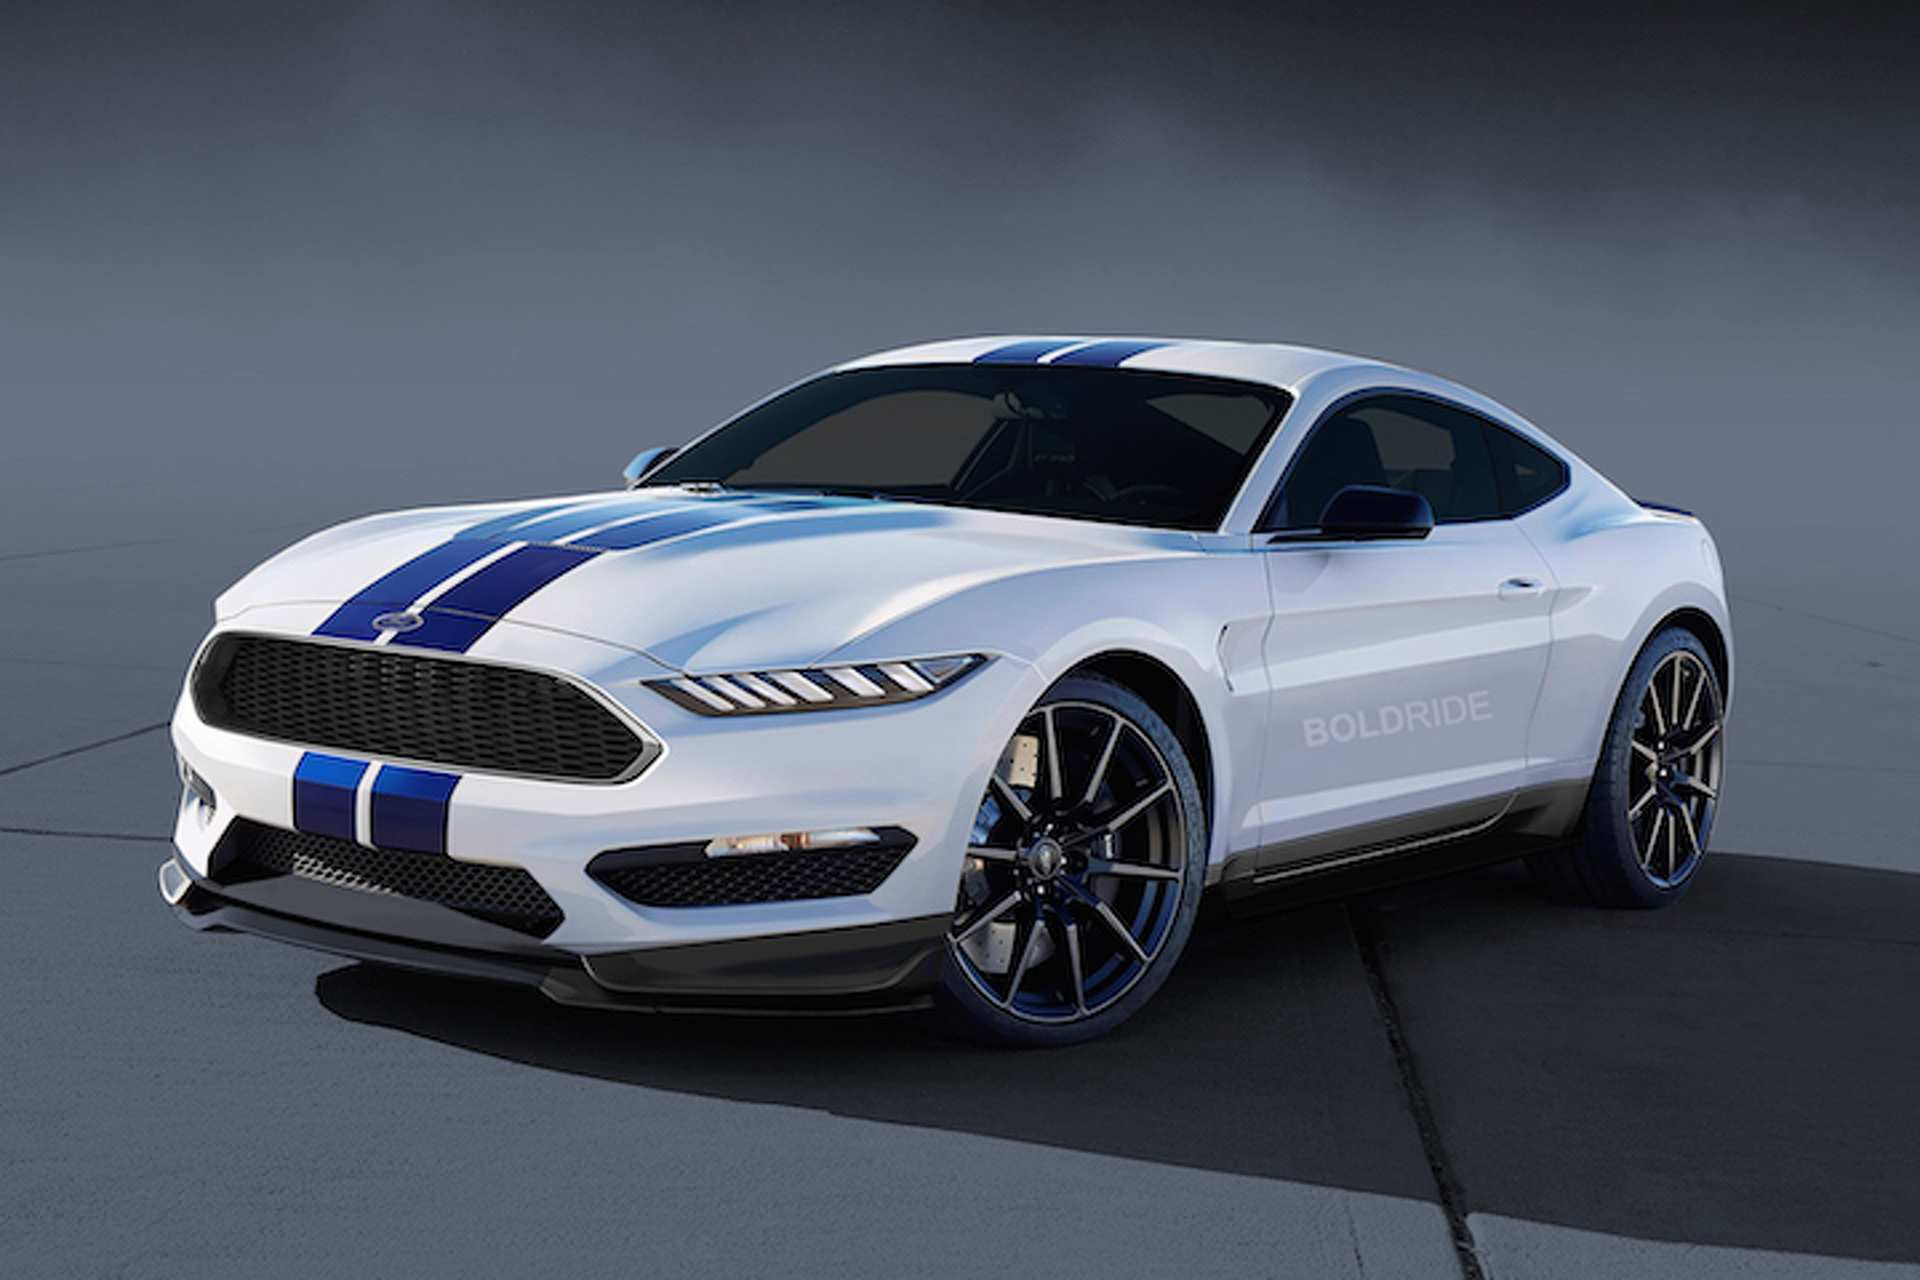 54 Concept of Ford Performance Vehicles By 2020 Prices by Ford Performance Vehicles By 2020